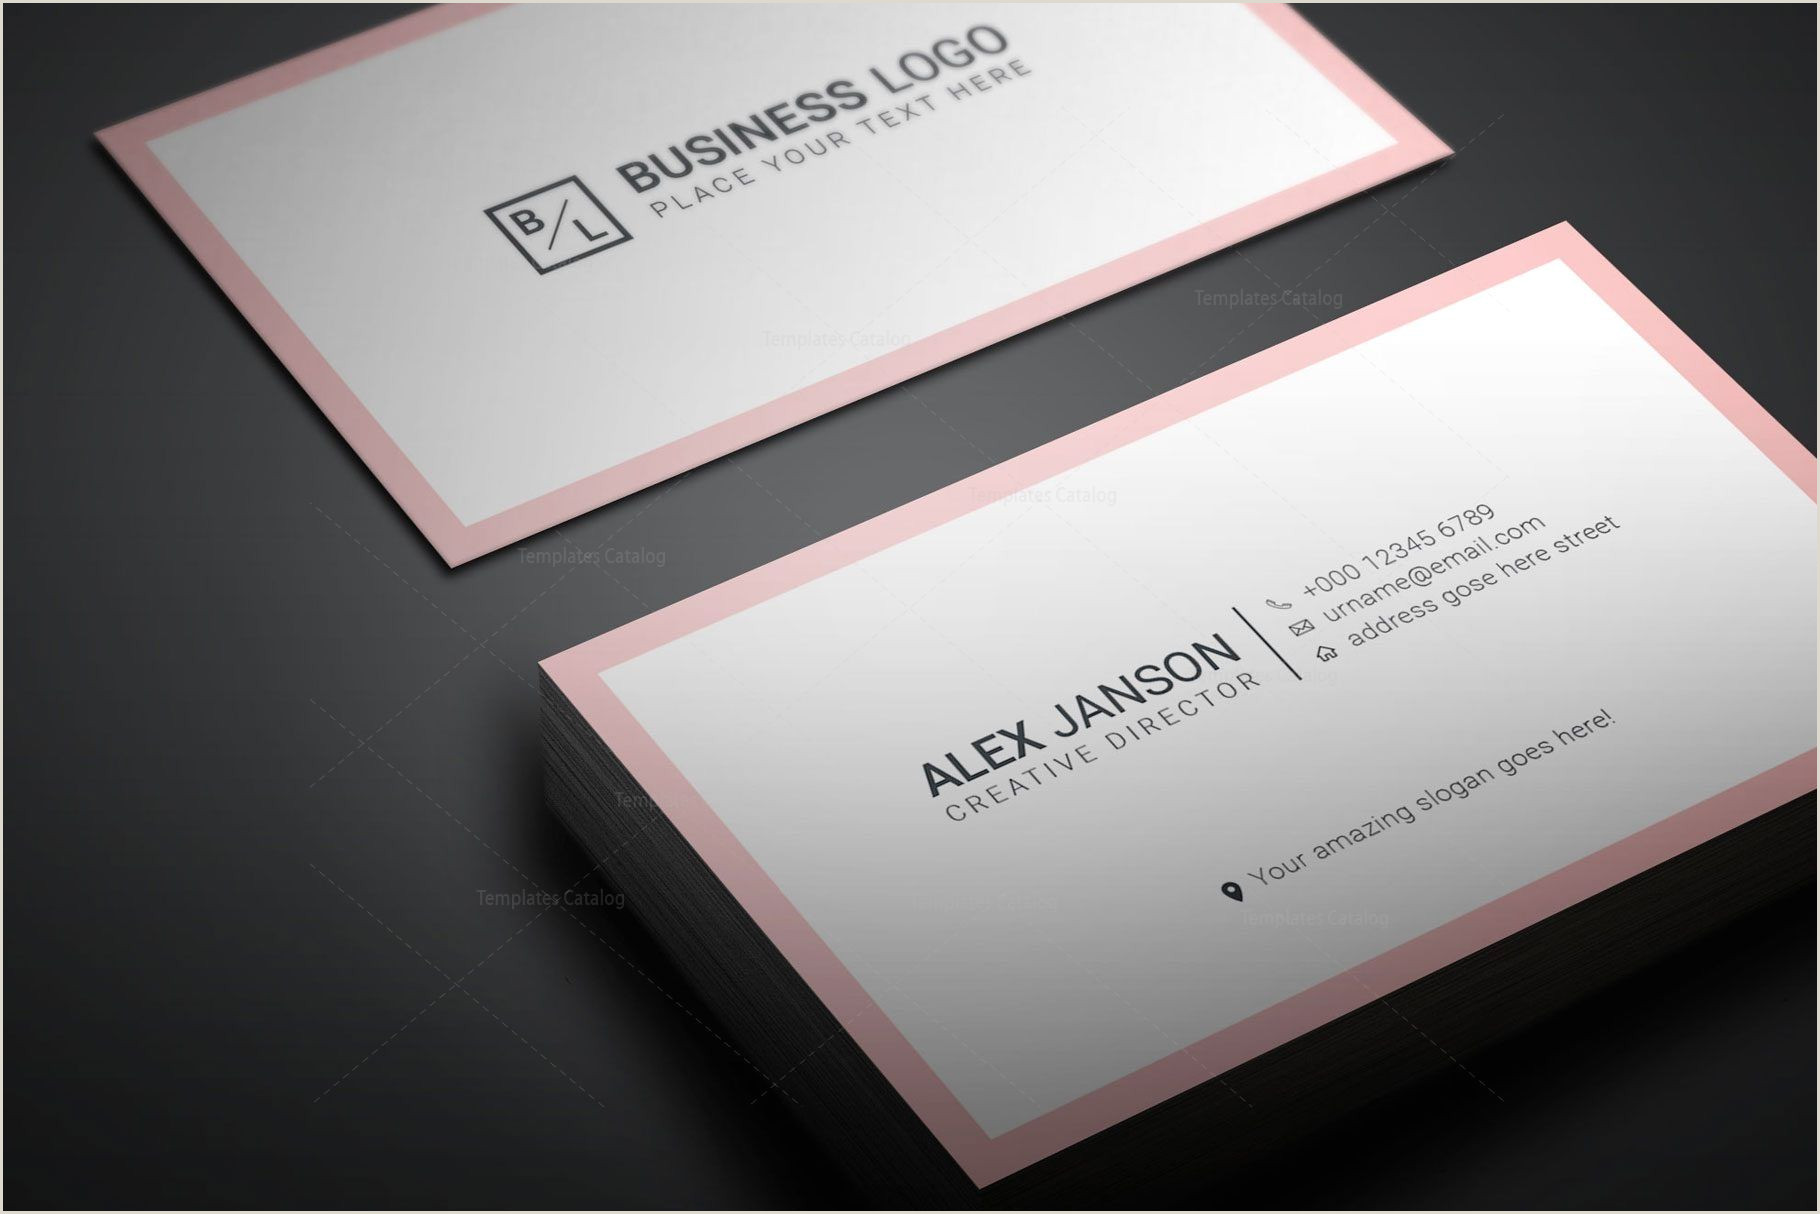 Best Way To Store Business Cards Pin On Business Cards